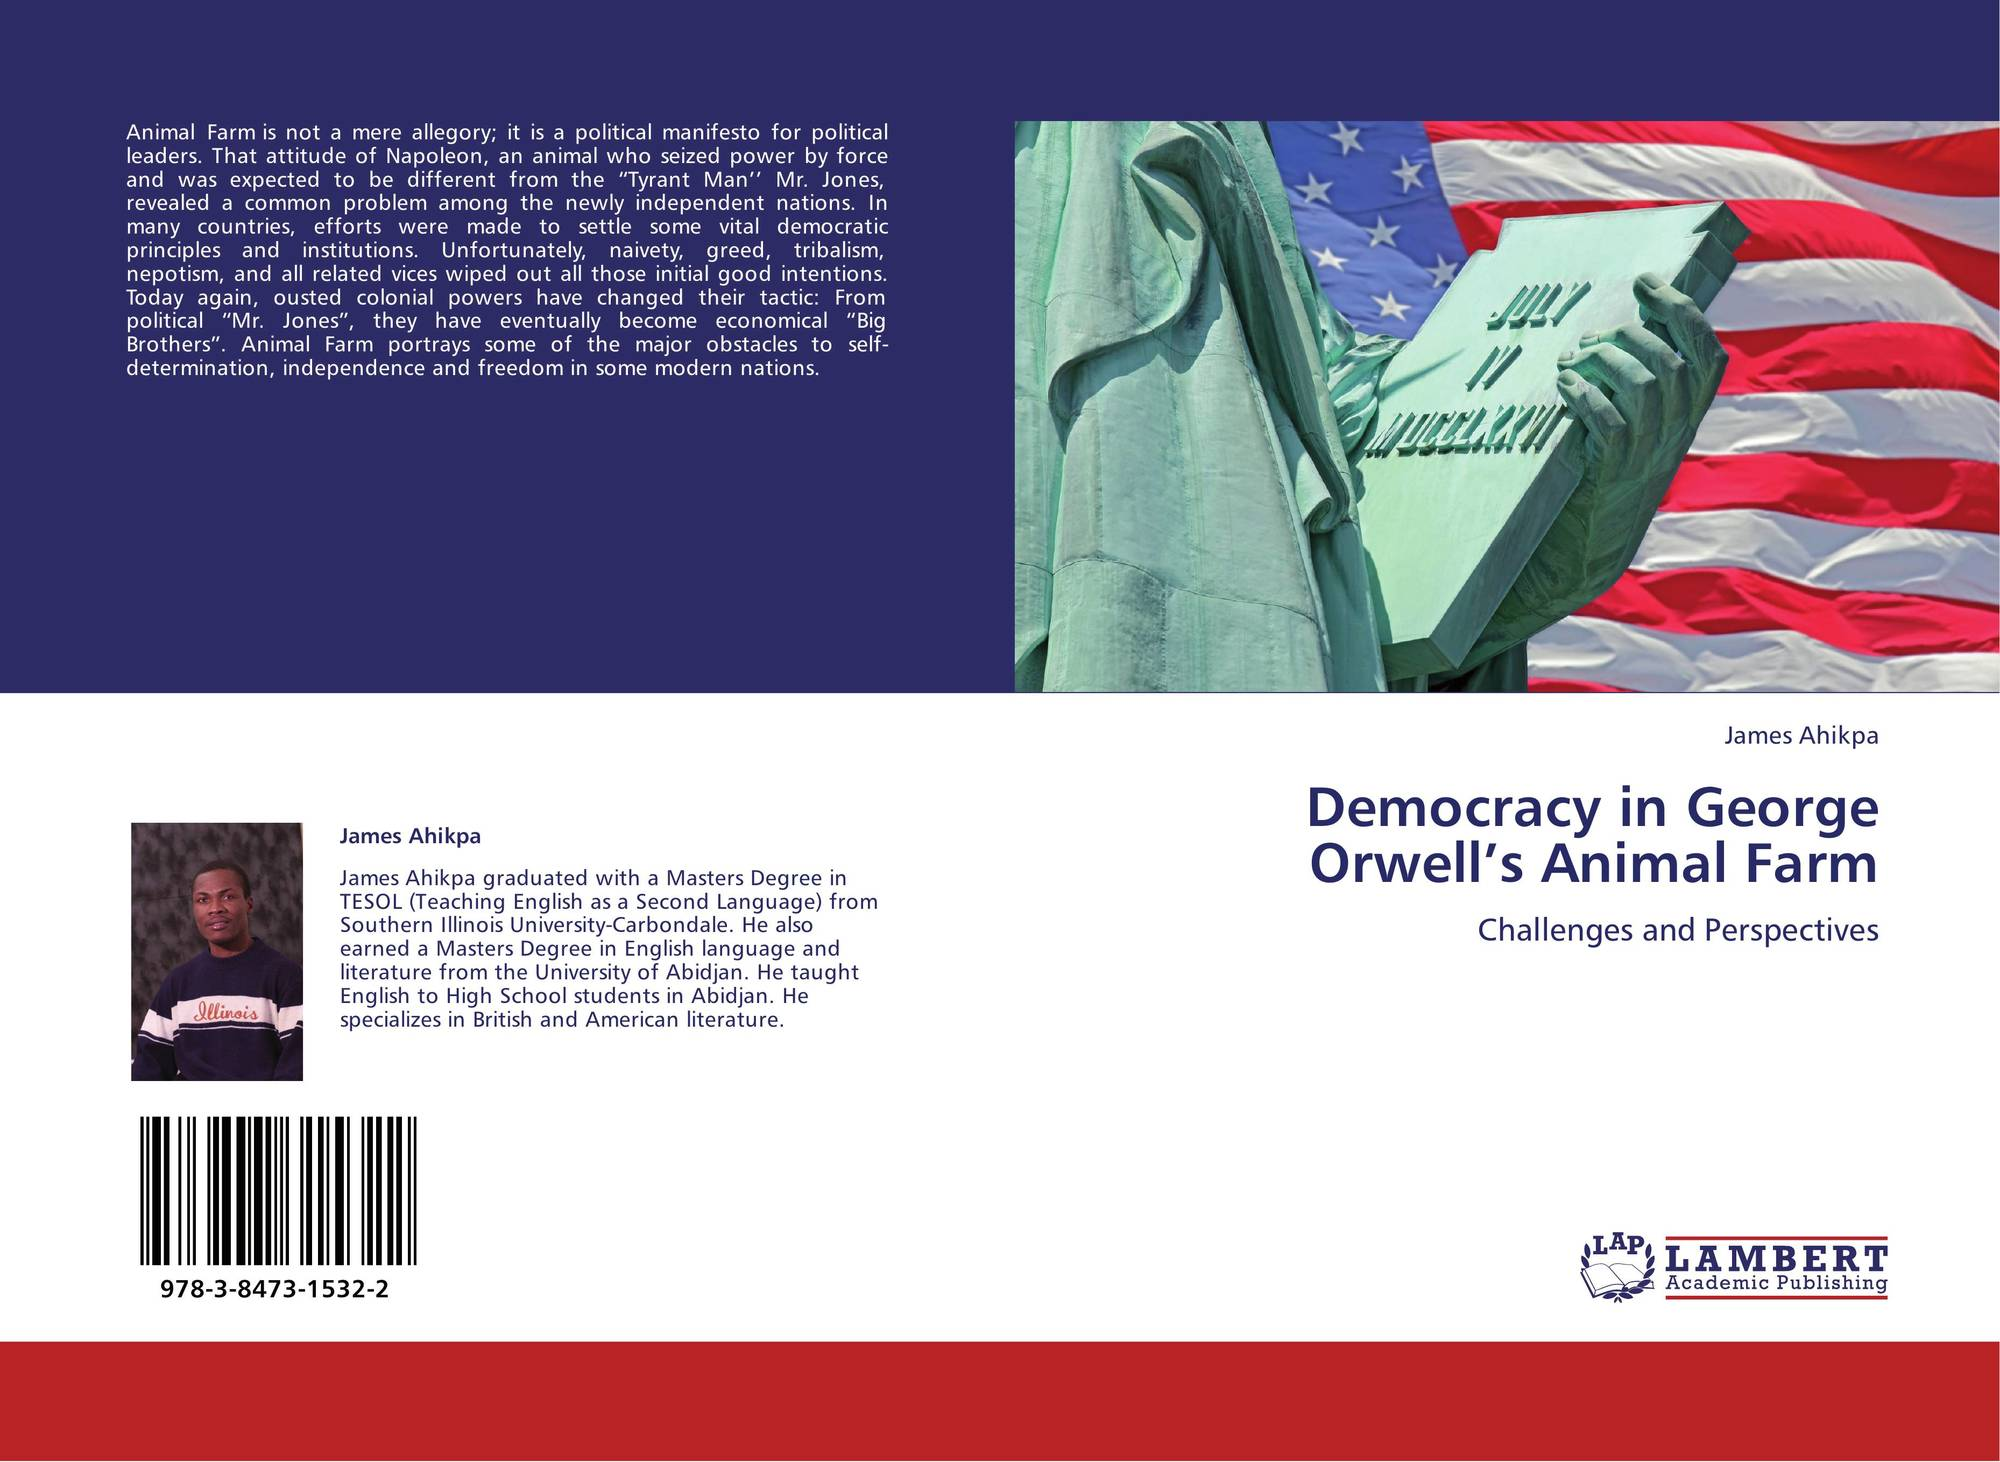 an analysis of the role of the language in the totalitarian society portrayed in george orwells dyst Orwell's nineteen eighty four and hate speech a dystopian vision of a totalitarian society i was struck however by the central role the language.